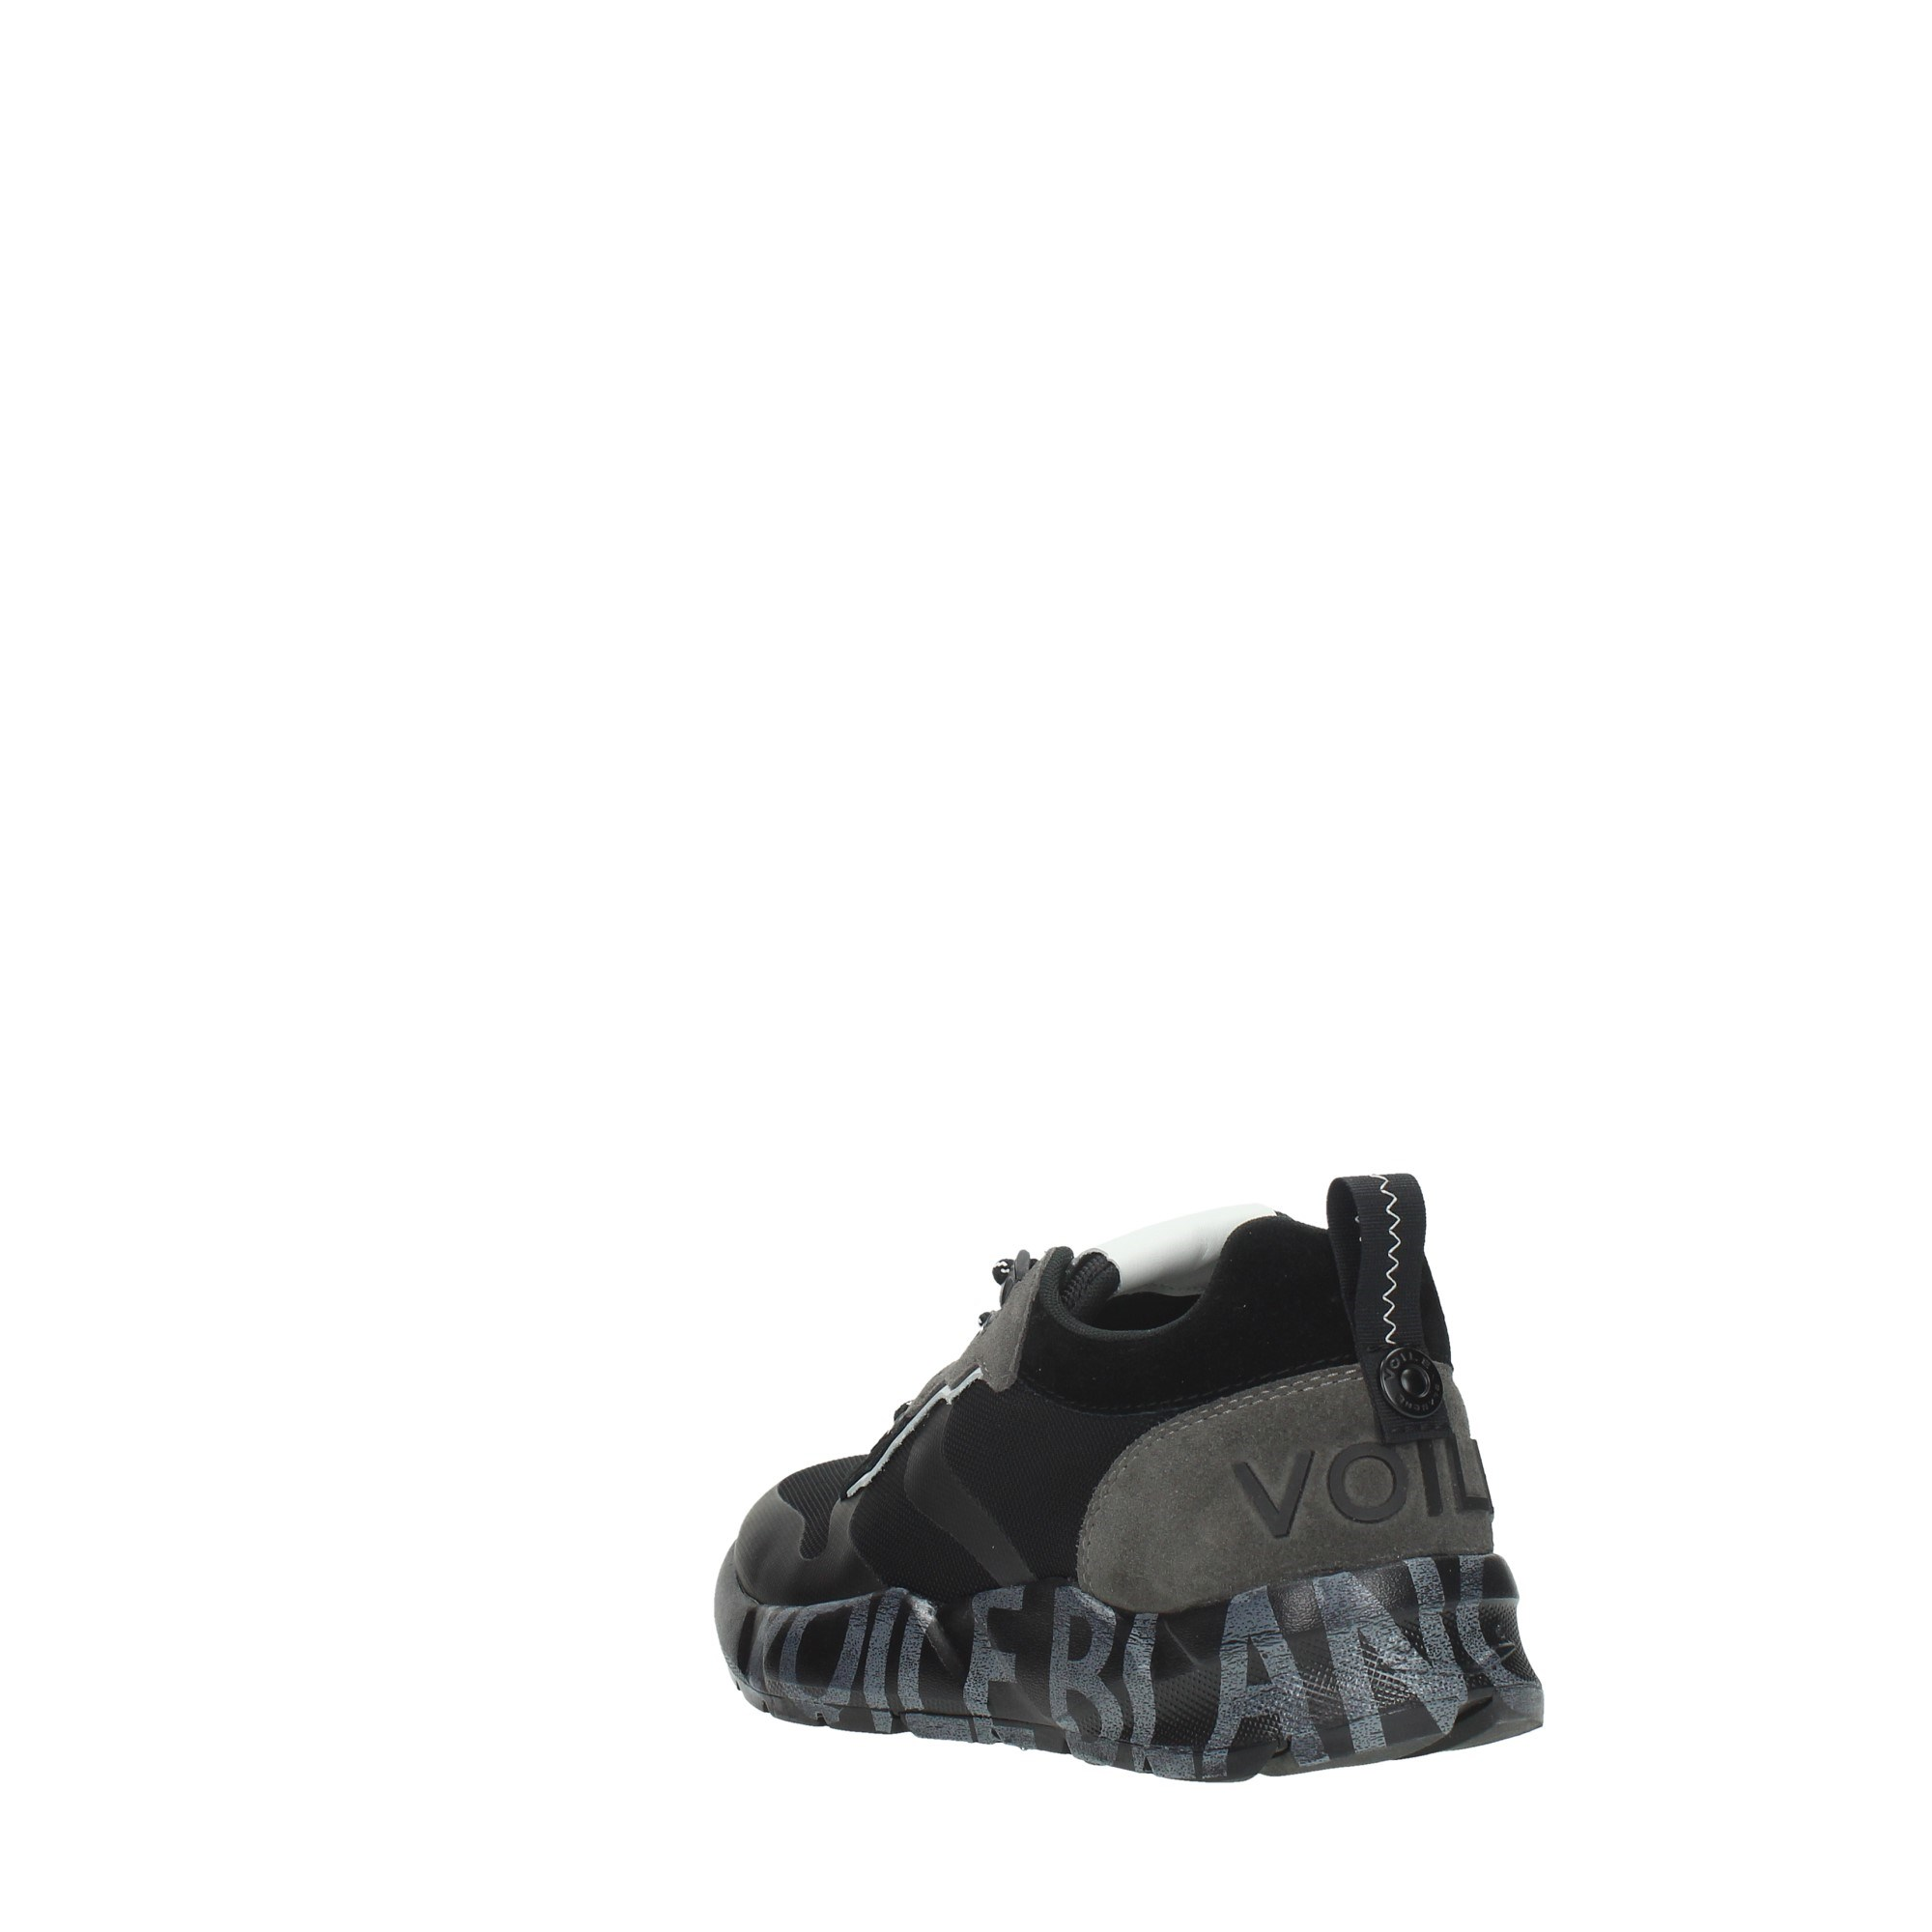 Voile Blanche Shoes Man Sneakers Black CLUB02